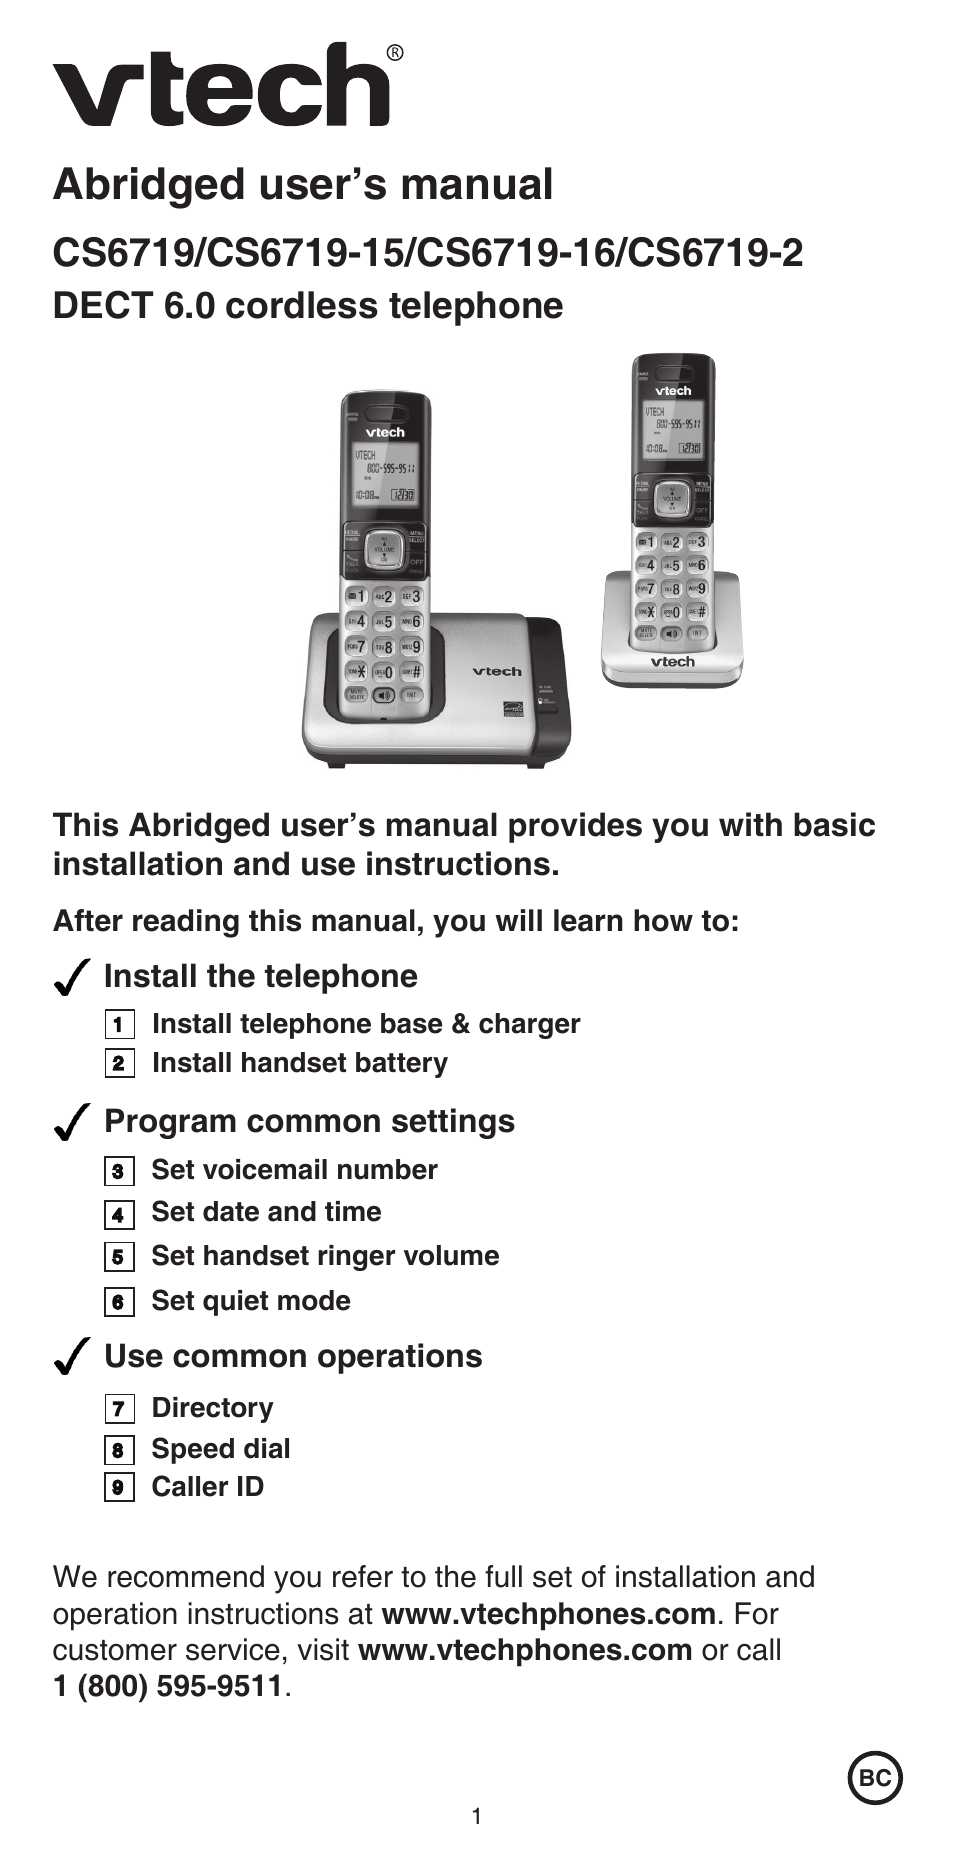 VTech CS6719-2 Abridged manual User Manual | 12 pages